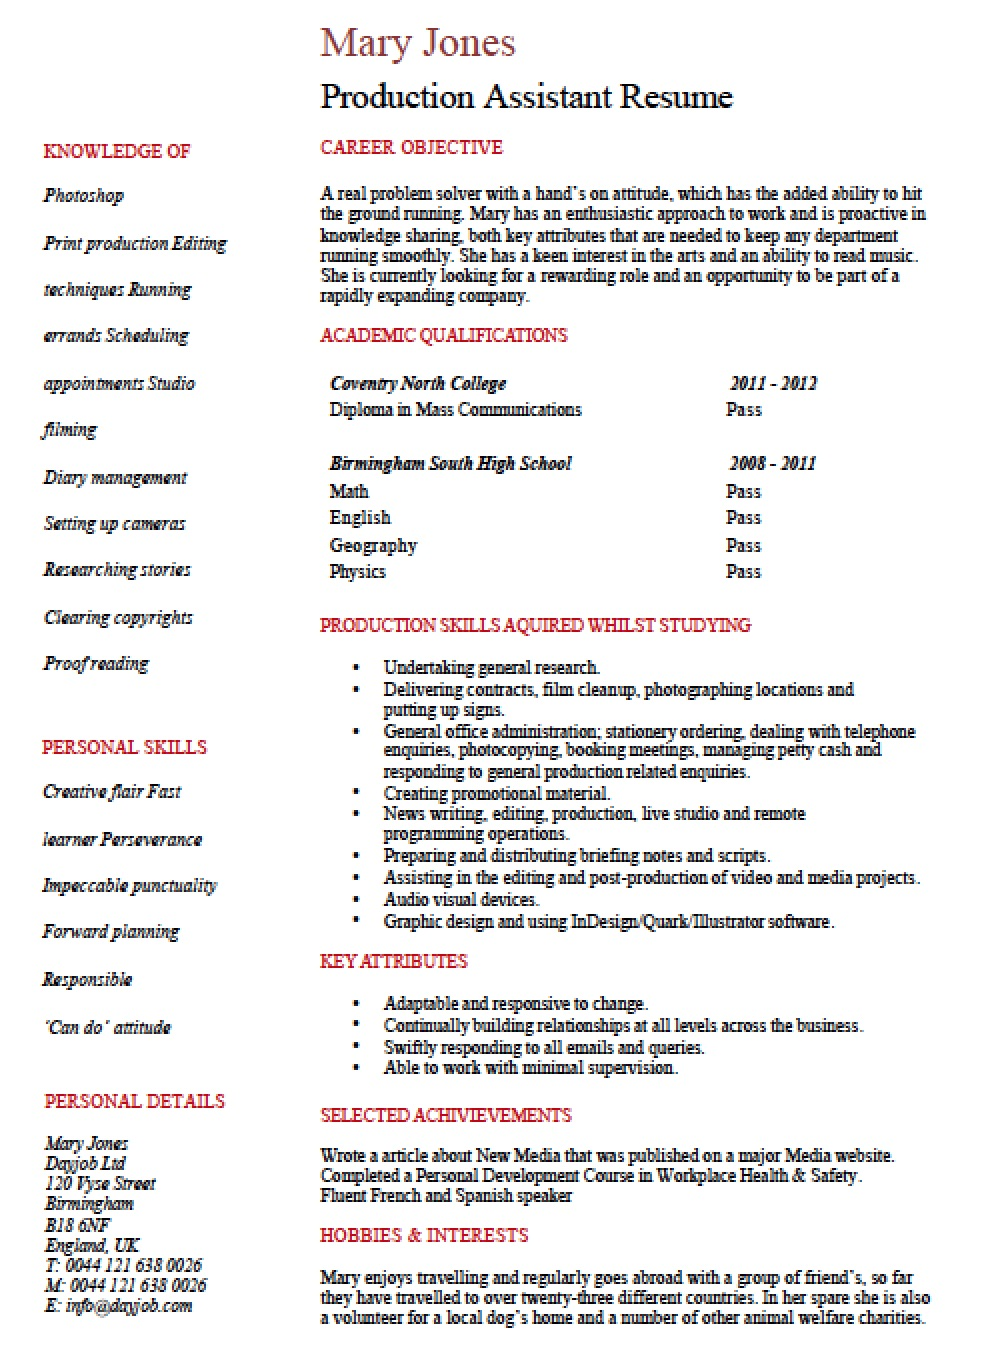 Resume Template Rtf Easy Online Resume Builder Create Or Upload Your Rsum  Free Entry Level Production